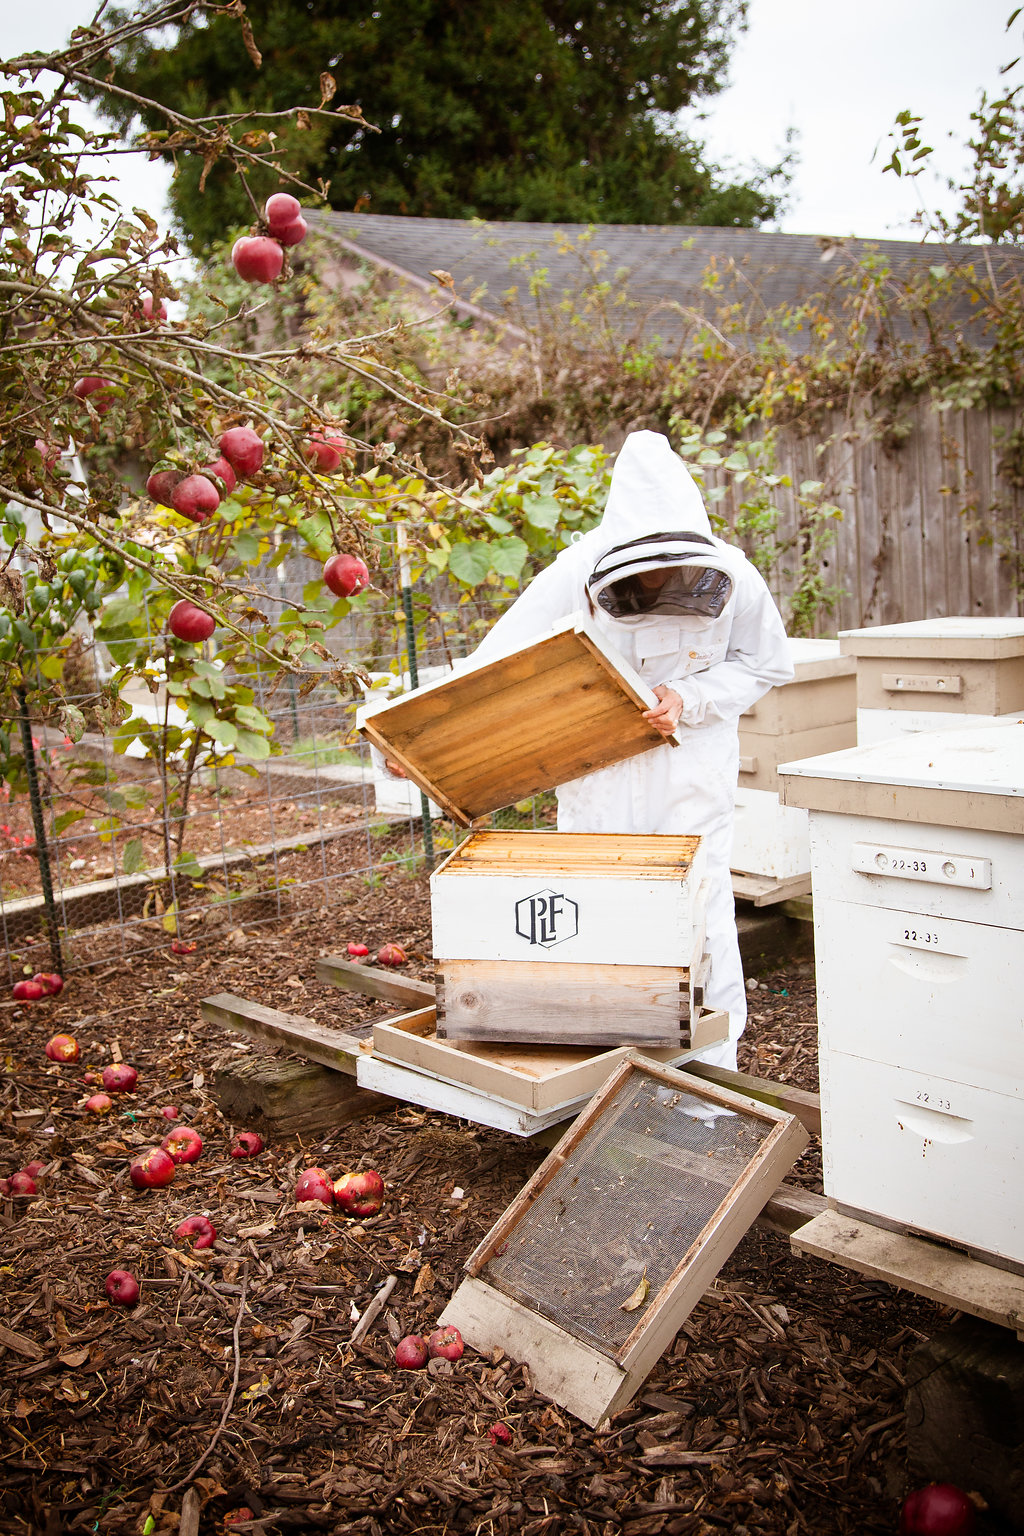 Humboldt has - a lot of natural beauty that inspires us to work outdoors, and bees are the artists of those landscapes.